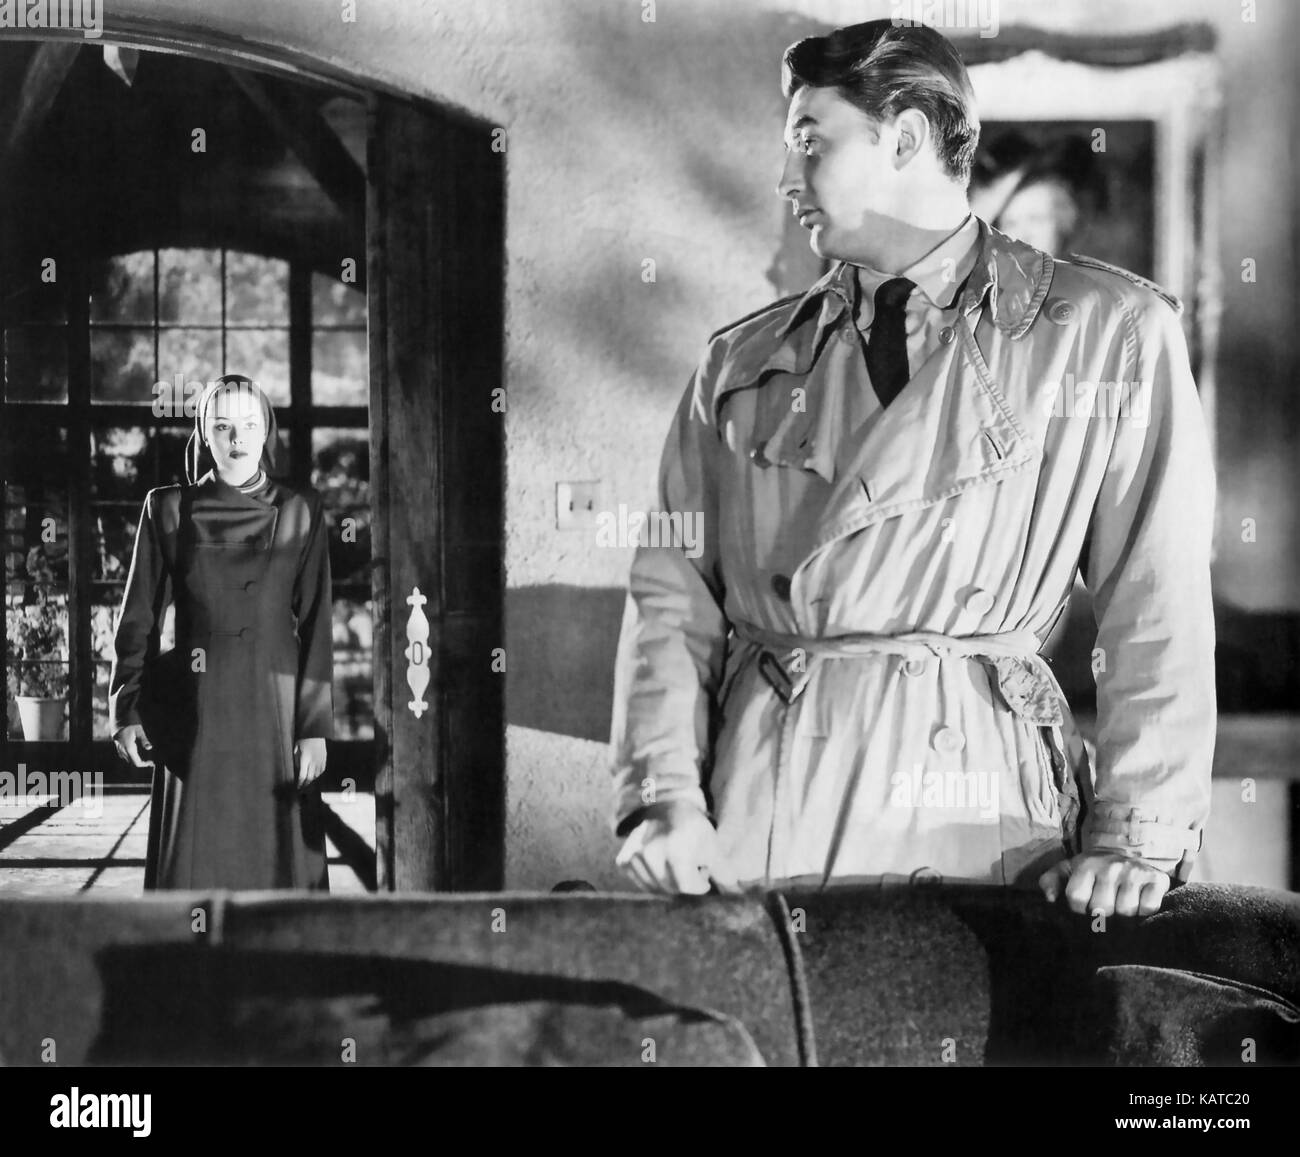 OUT OF THE PAST 1947 RKO Radio pictures film with Jane Greer and Robert Mitchum - Stock Image